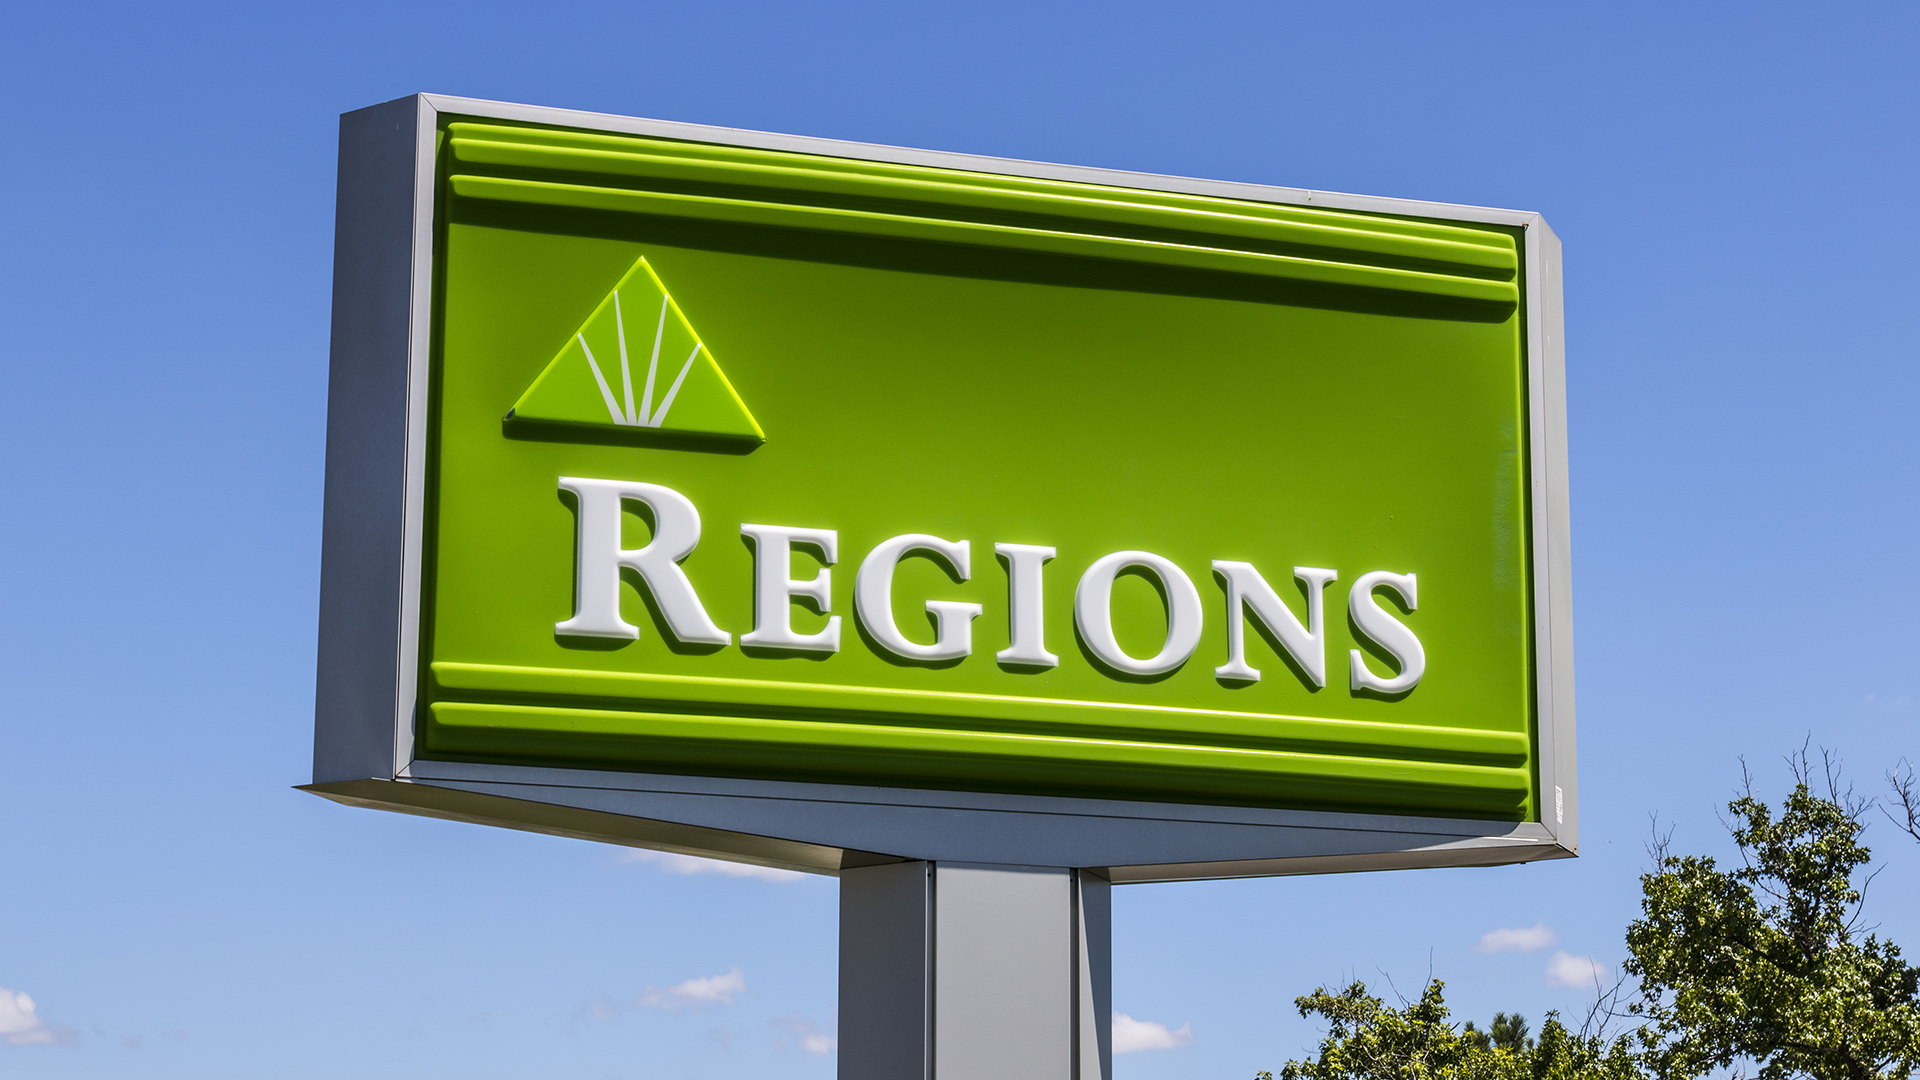 Here S Your Regions Bank Routing Number